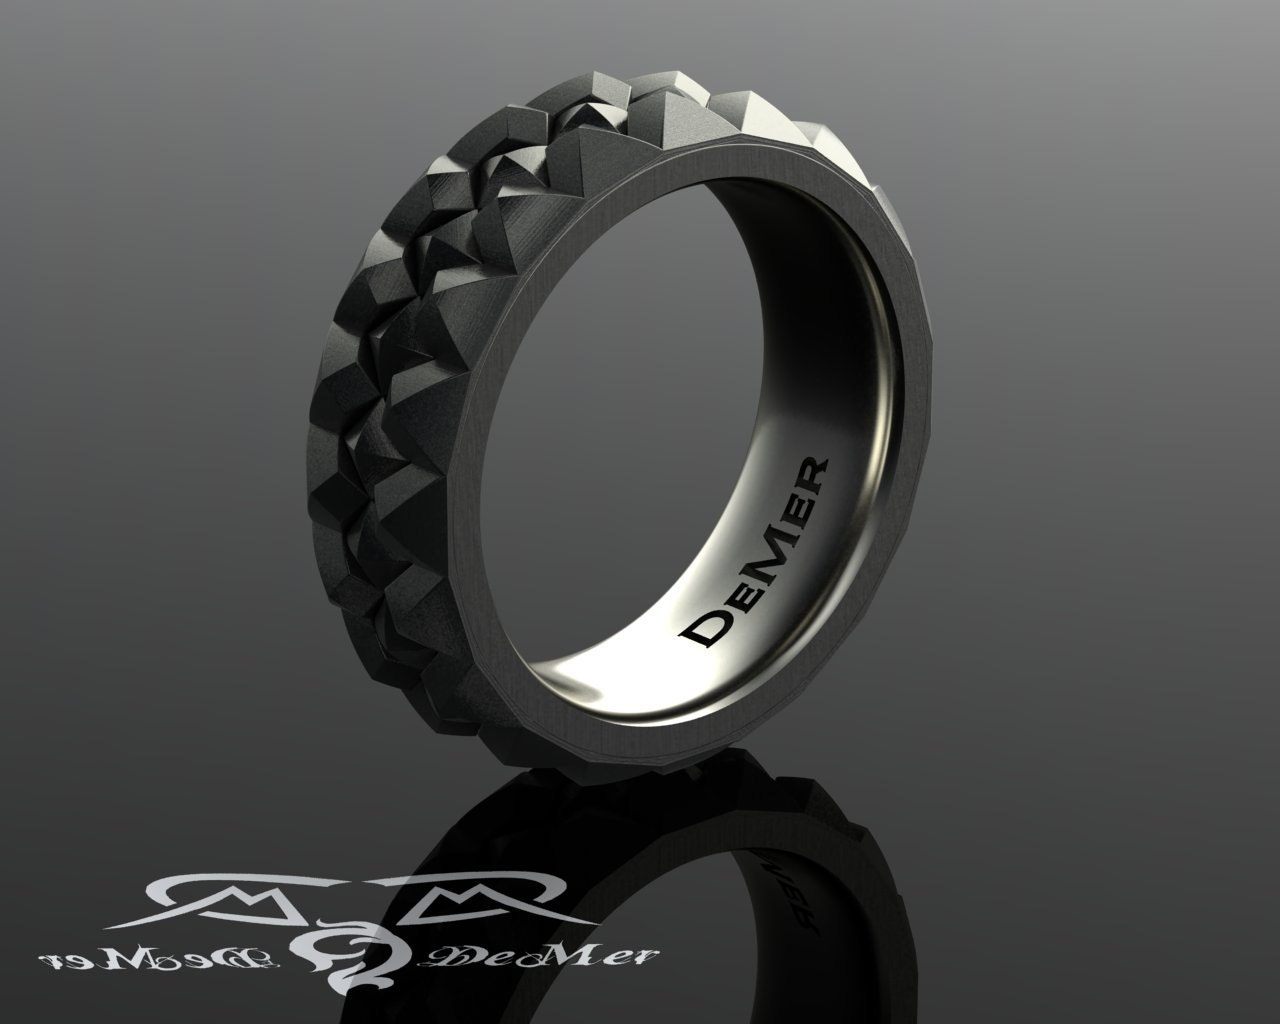 Ring In The Steampunk Decor To Pimp Up Your Home: Knurled Pyramid Stud Wedding Band. Heavy White Gold 8mm Mens